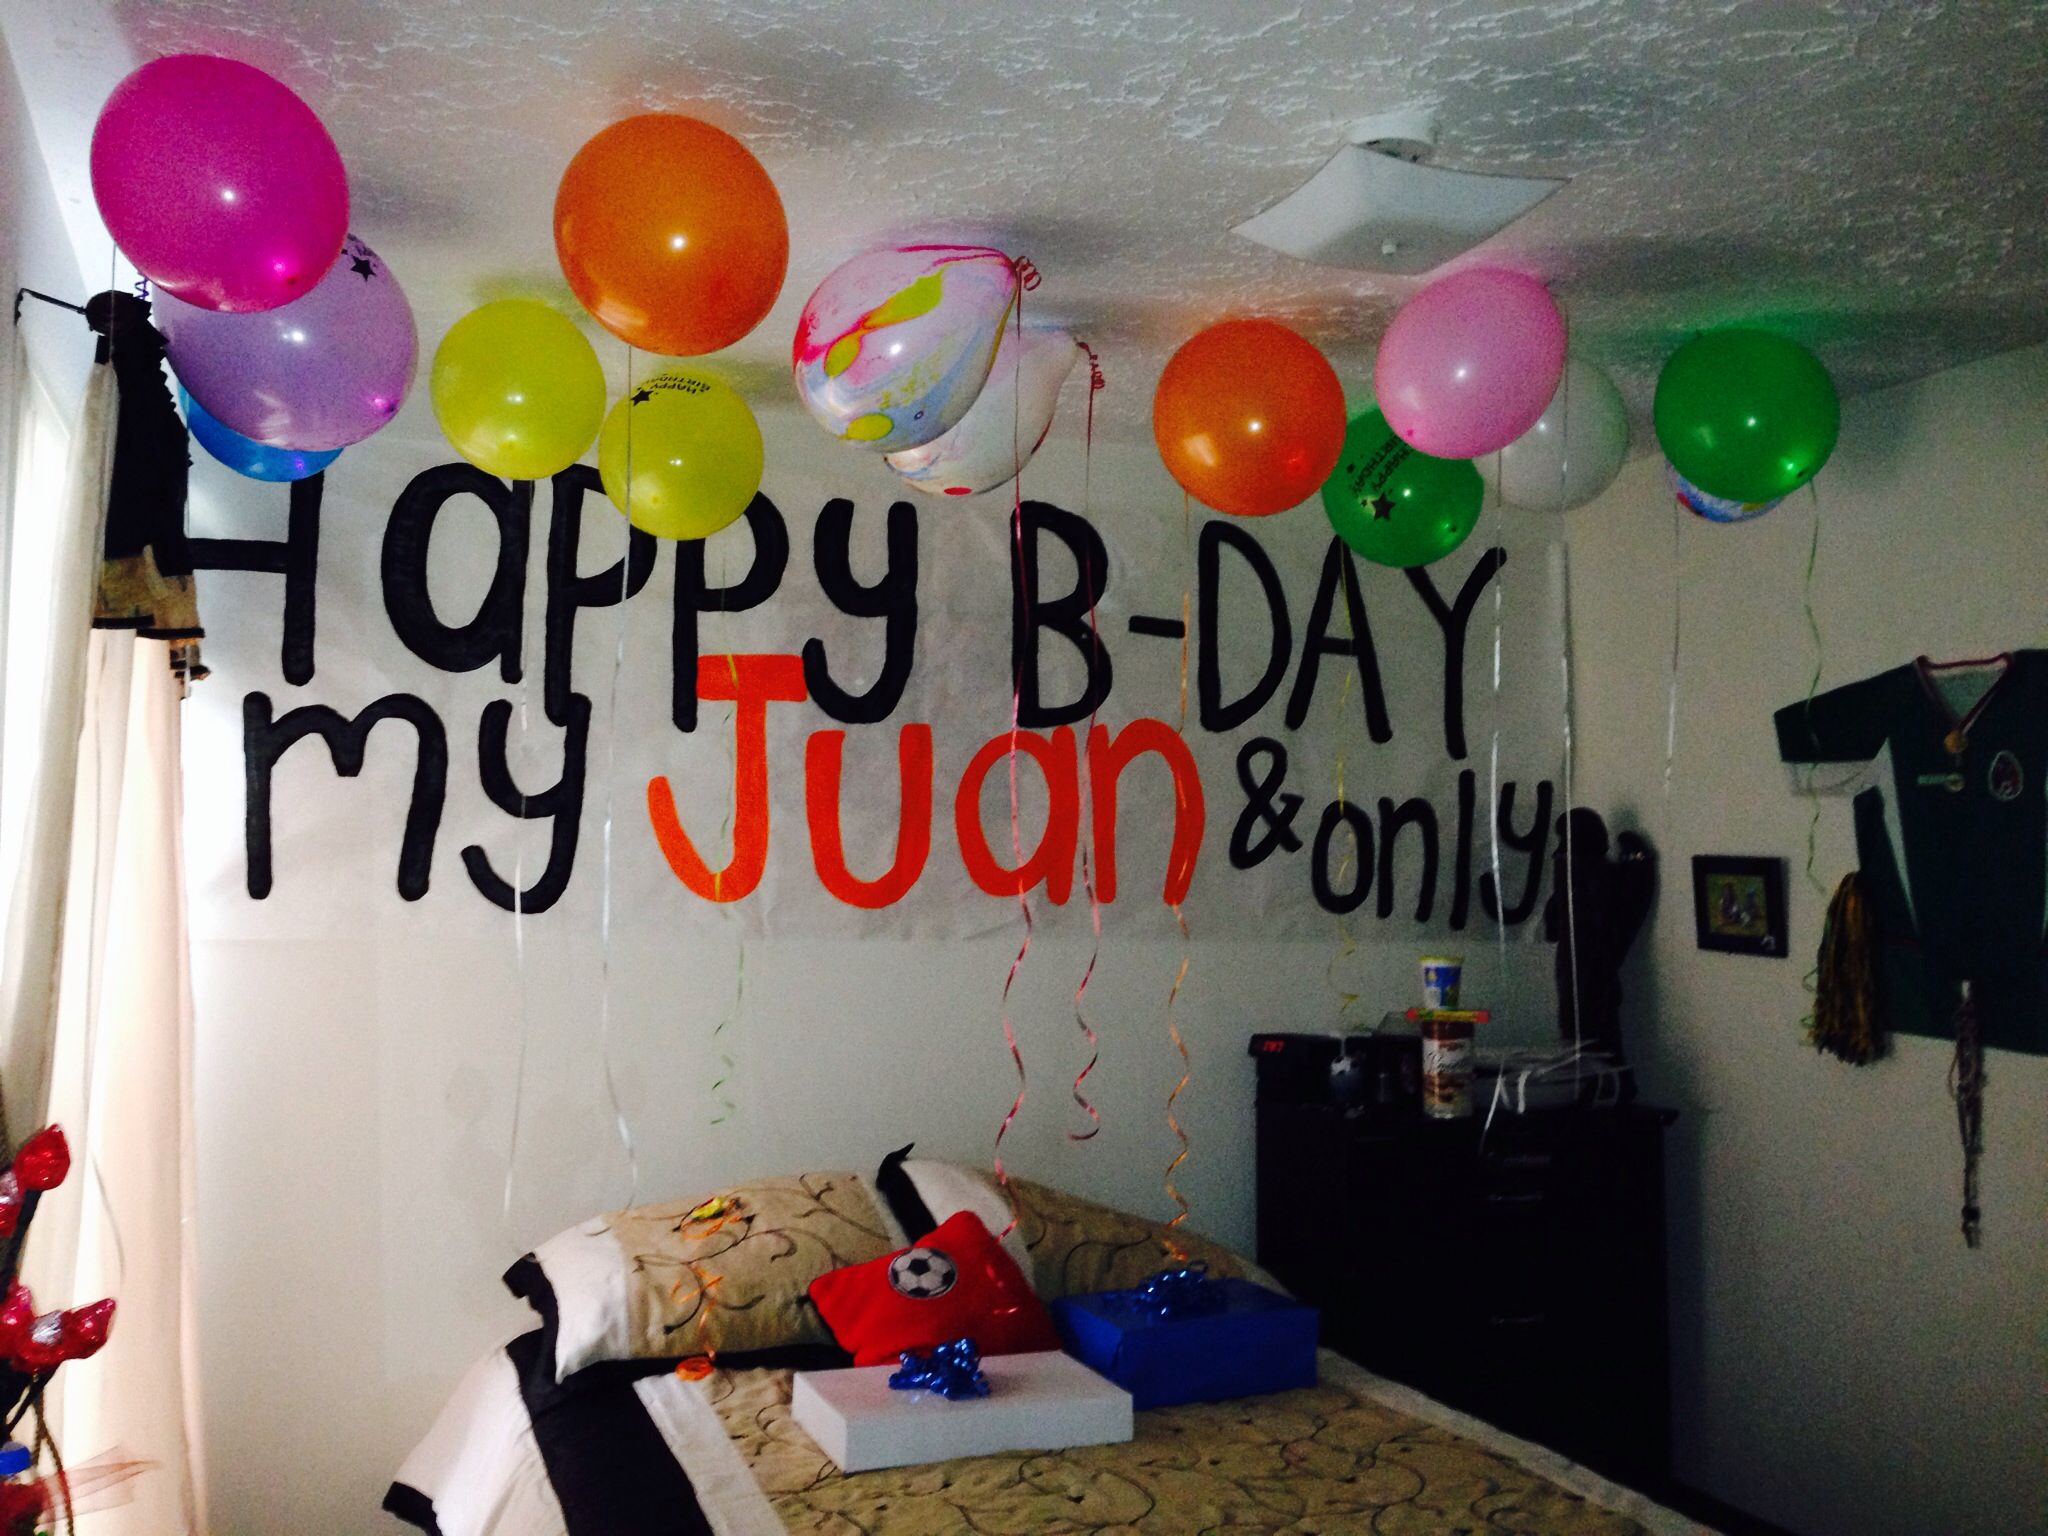 If The Name Fits Go For It Birthday Surprise Great